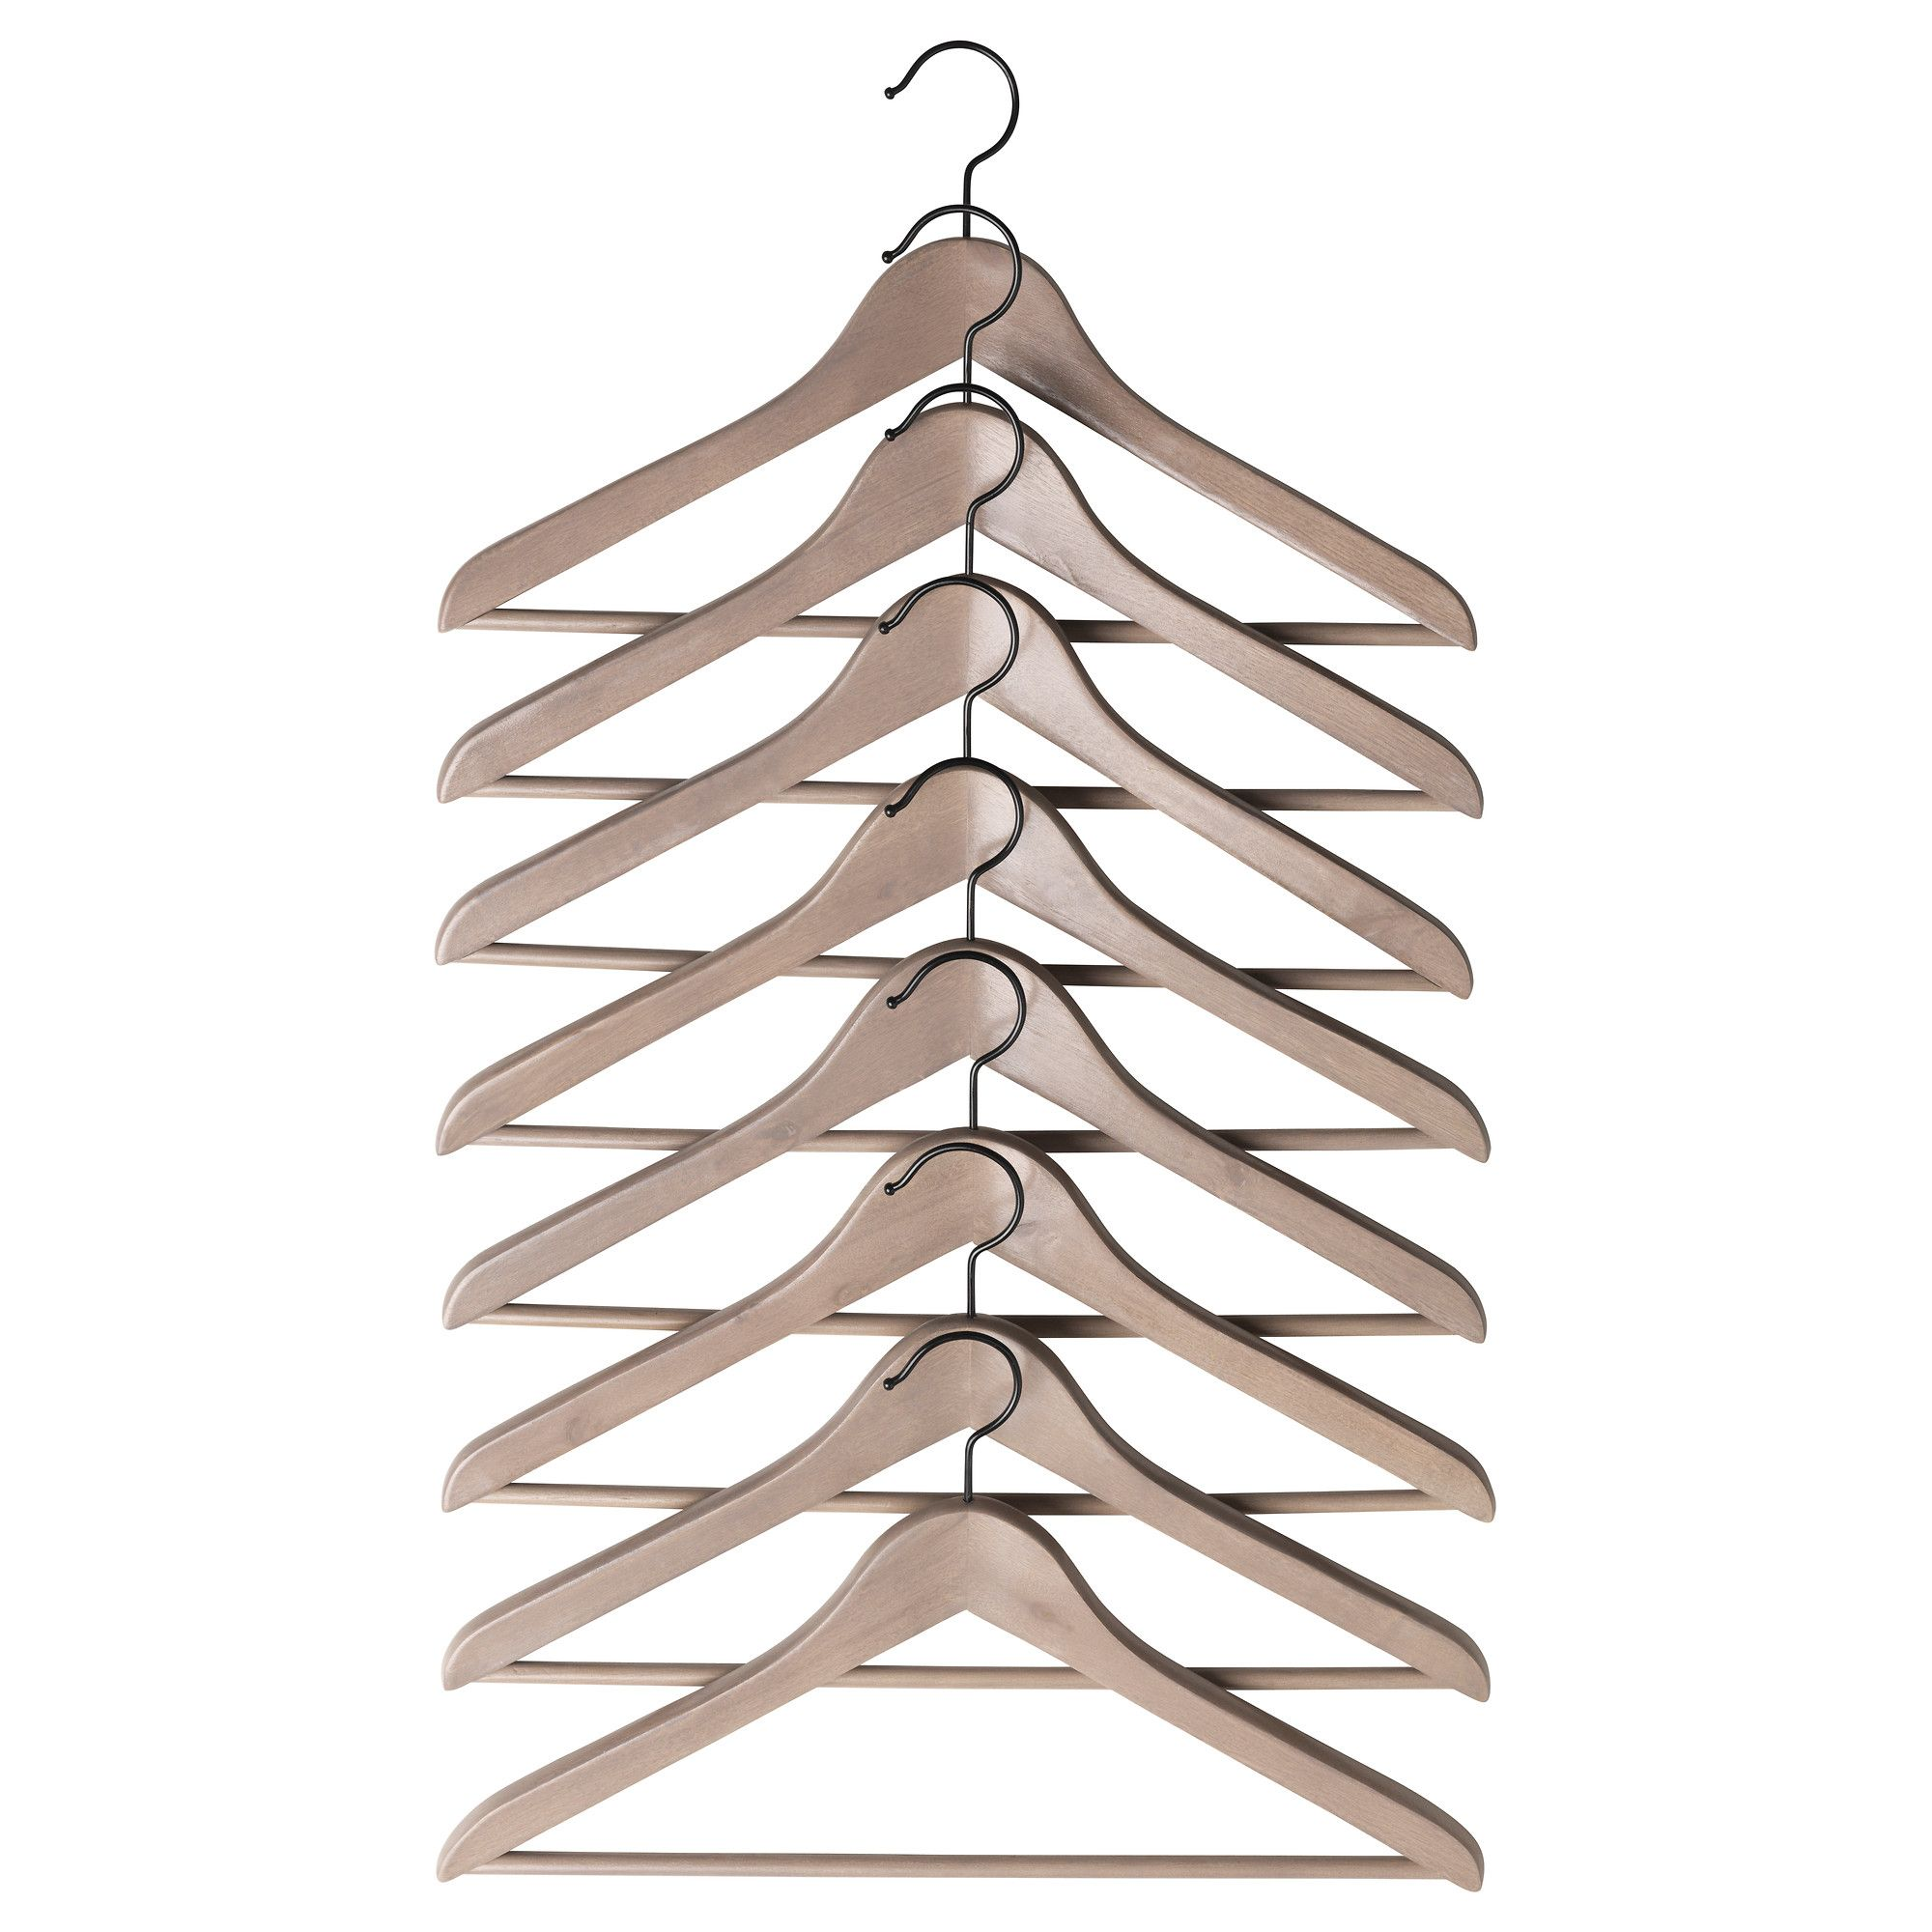 BUMERANG Curved Clothes Hanger   Grey/brown   IKEA I Cannot Stress Enough  The Difference That Proper Hangers Will Give Your Wardrobes.